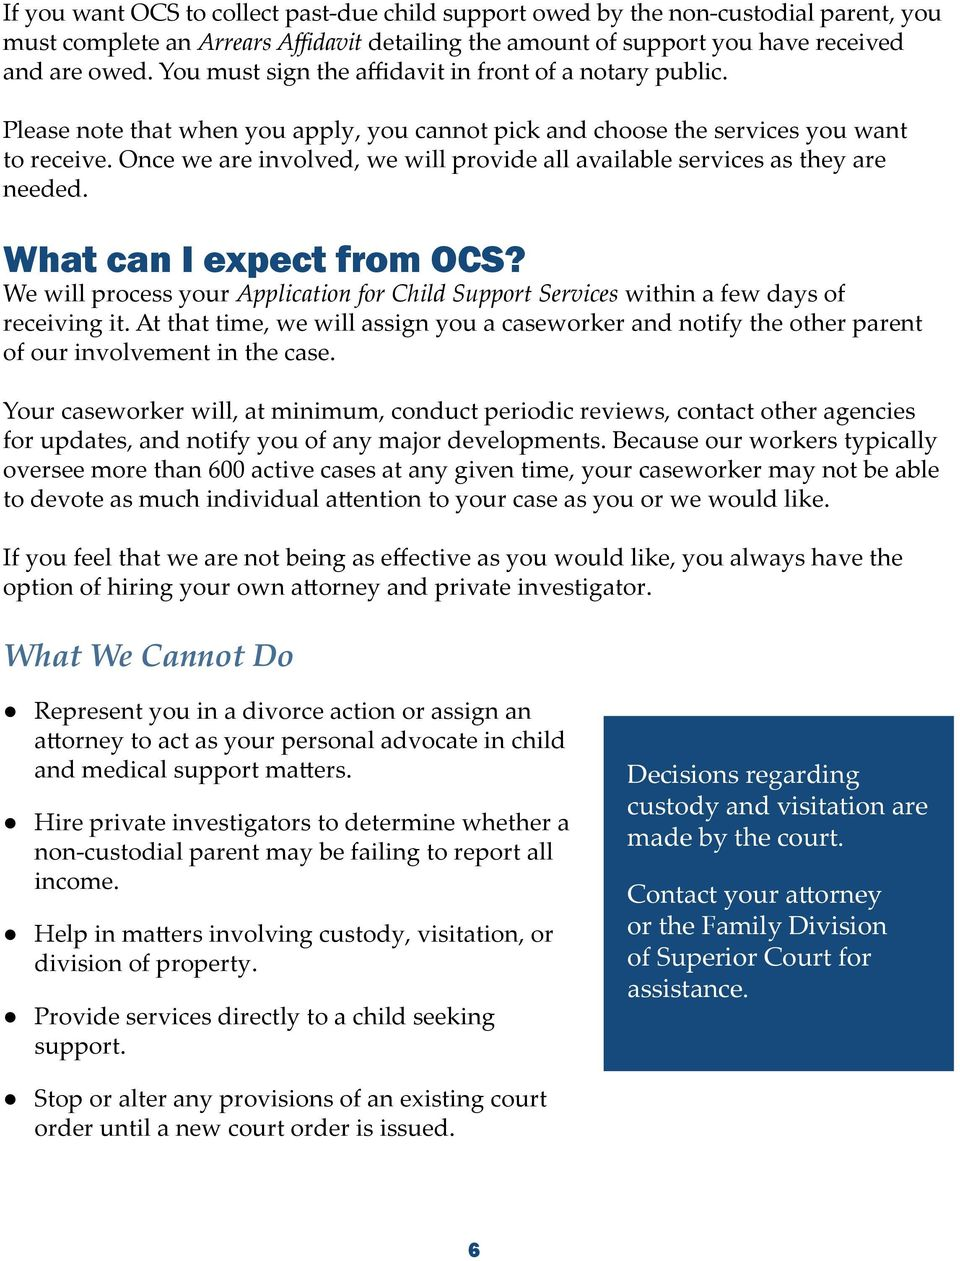 Once we are involved, we will provide all available services as they are needed. What can I expect from OCS?